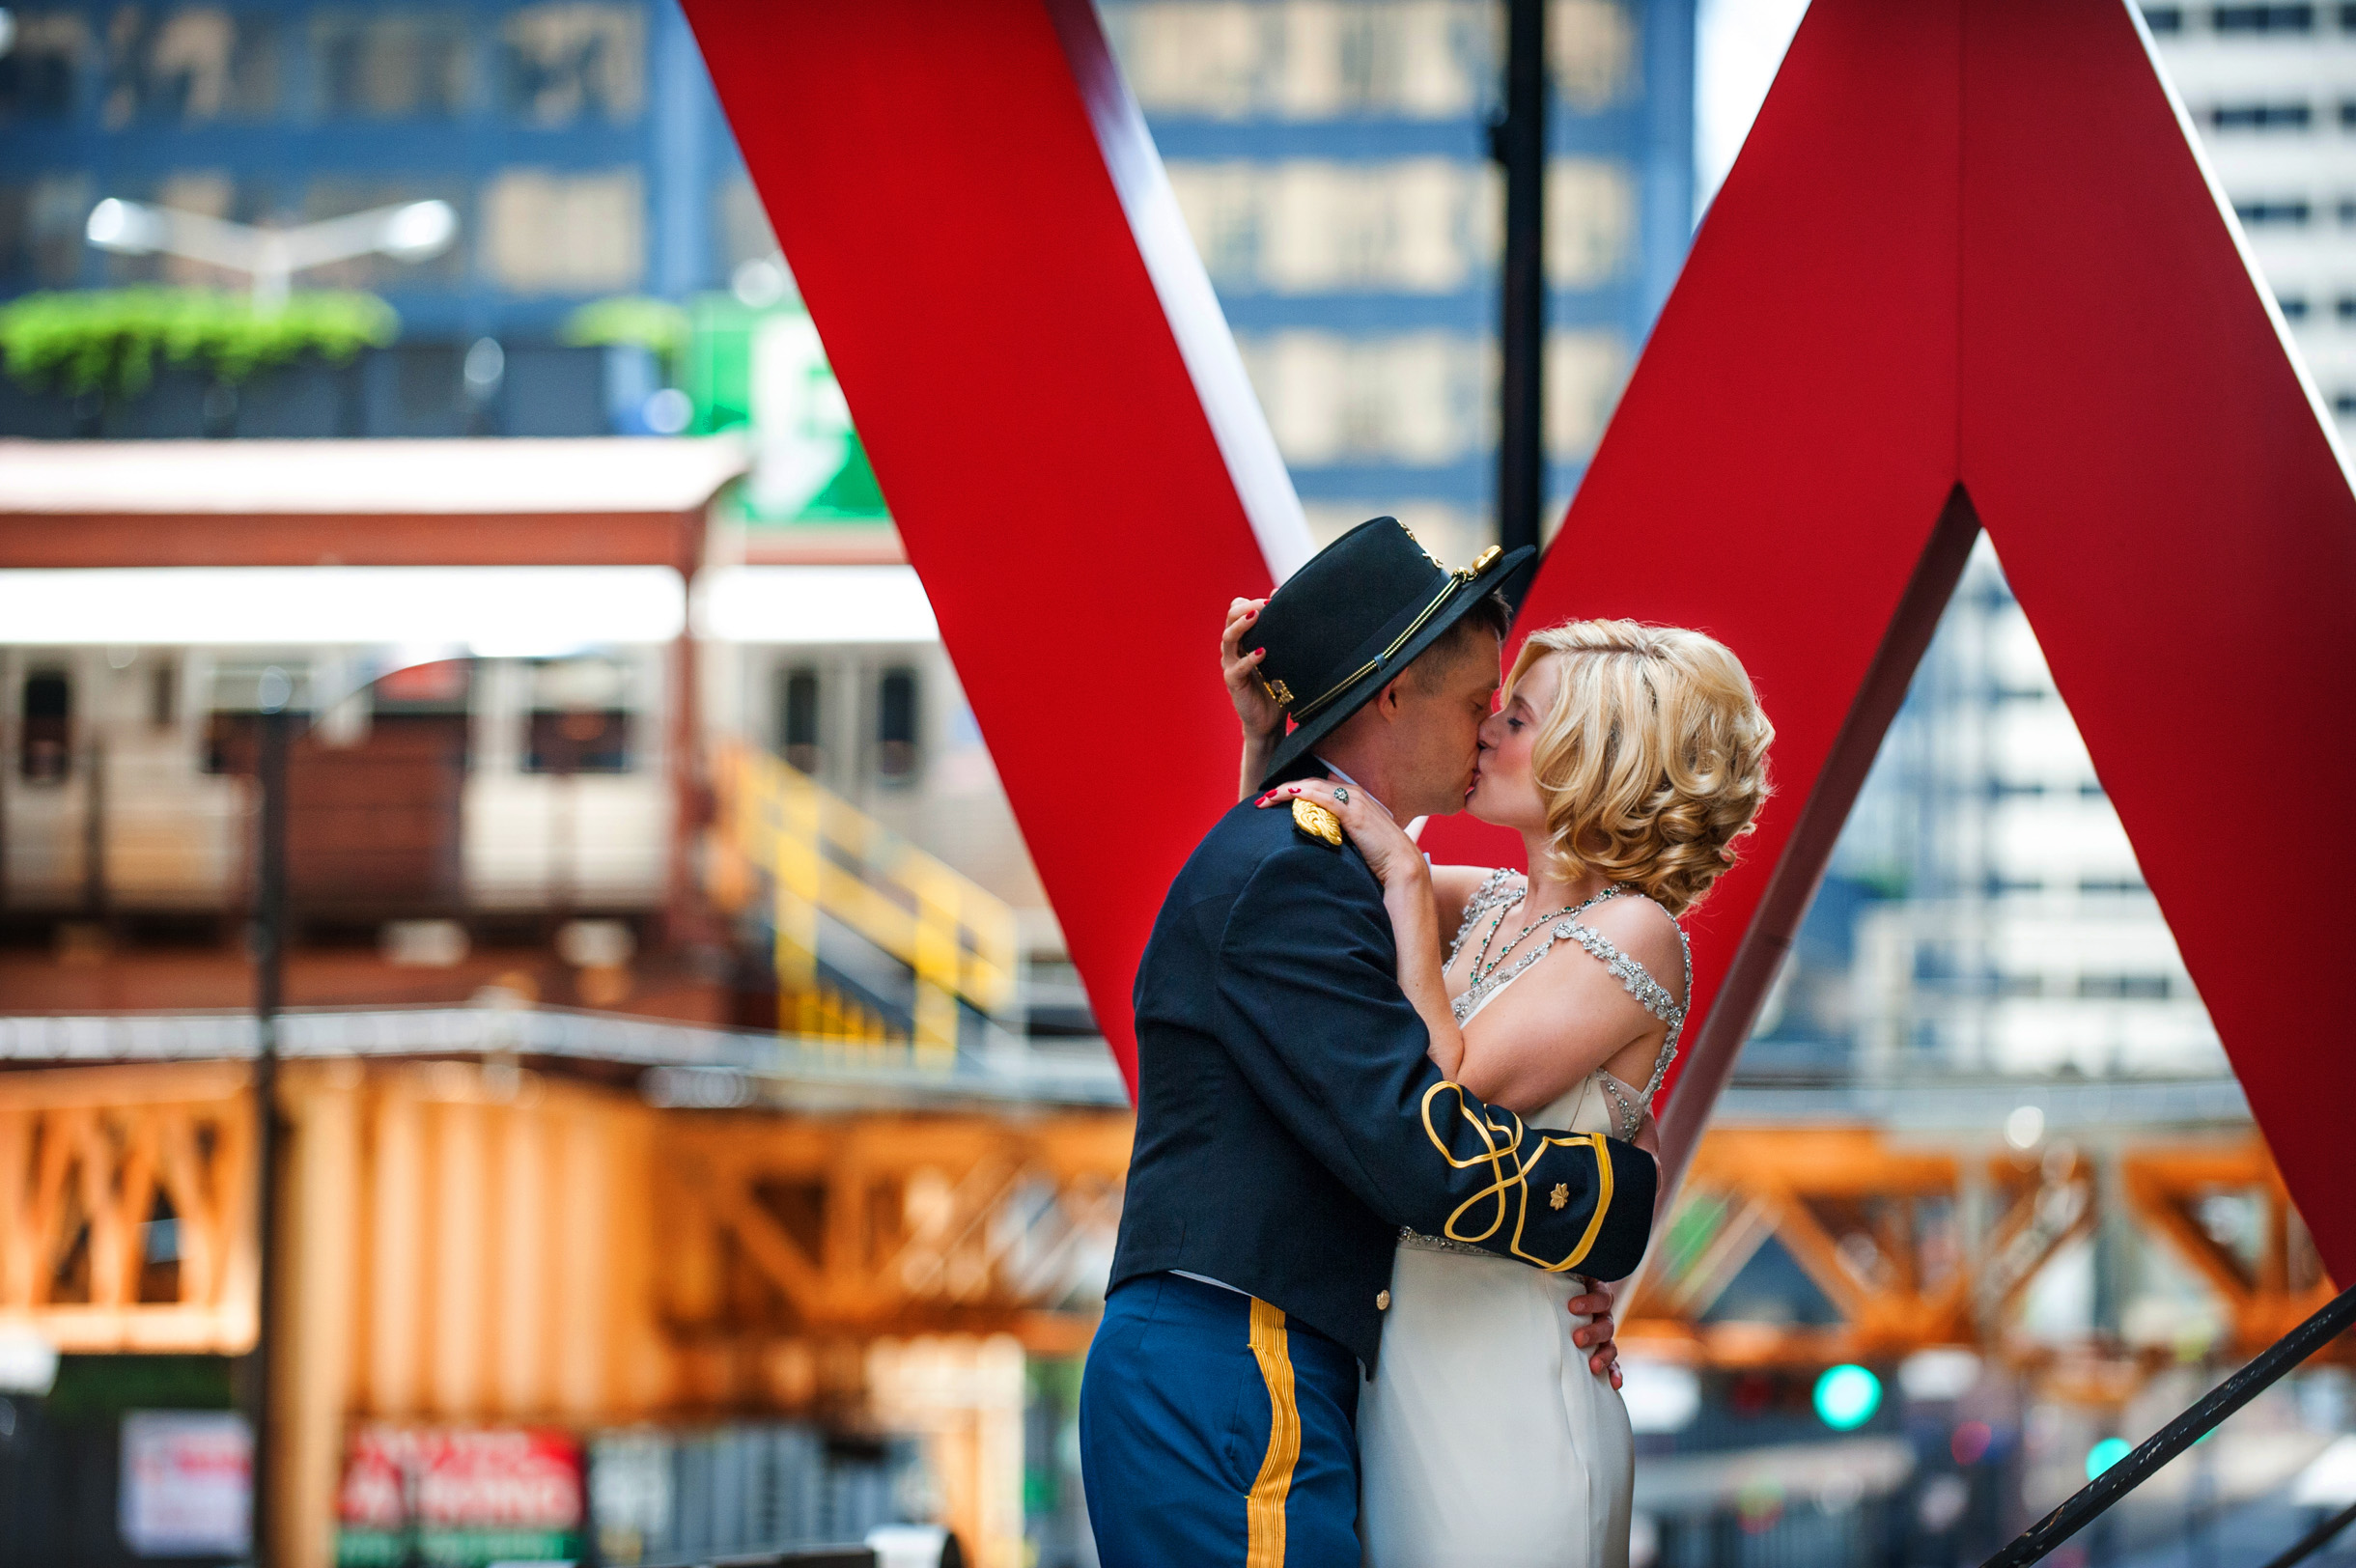 Military groom kissing bride on top of the marquee of the W Hotel in downtown Chicago as the El train passes in the background-348